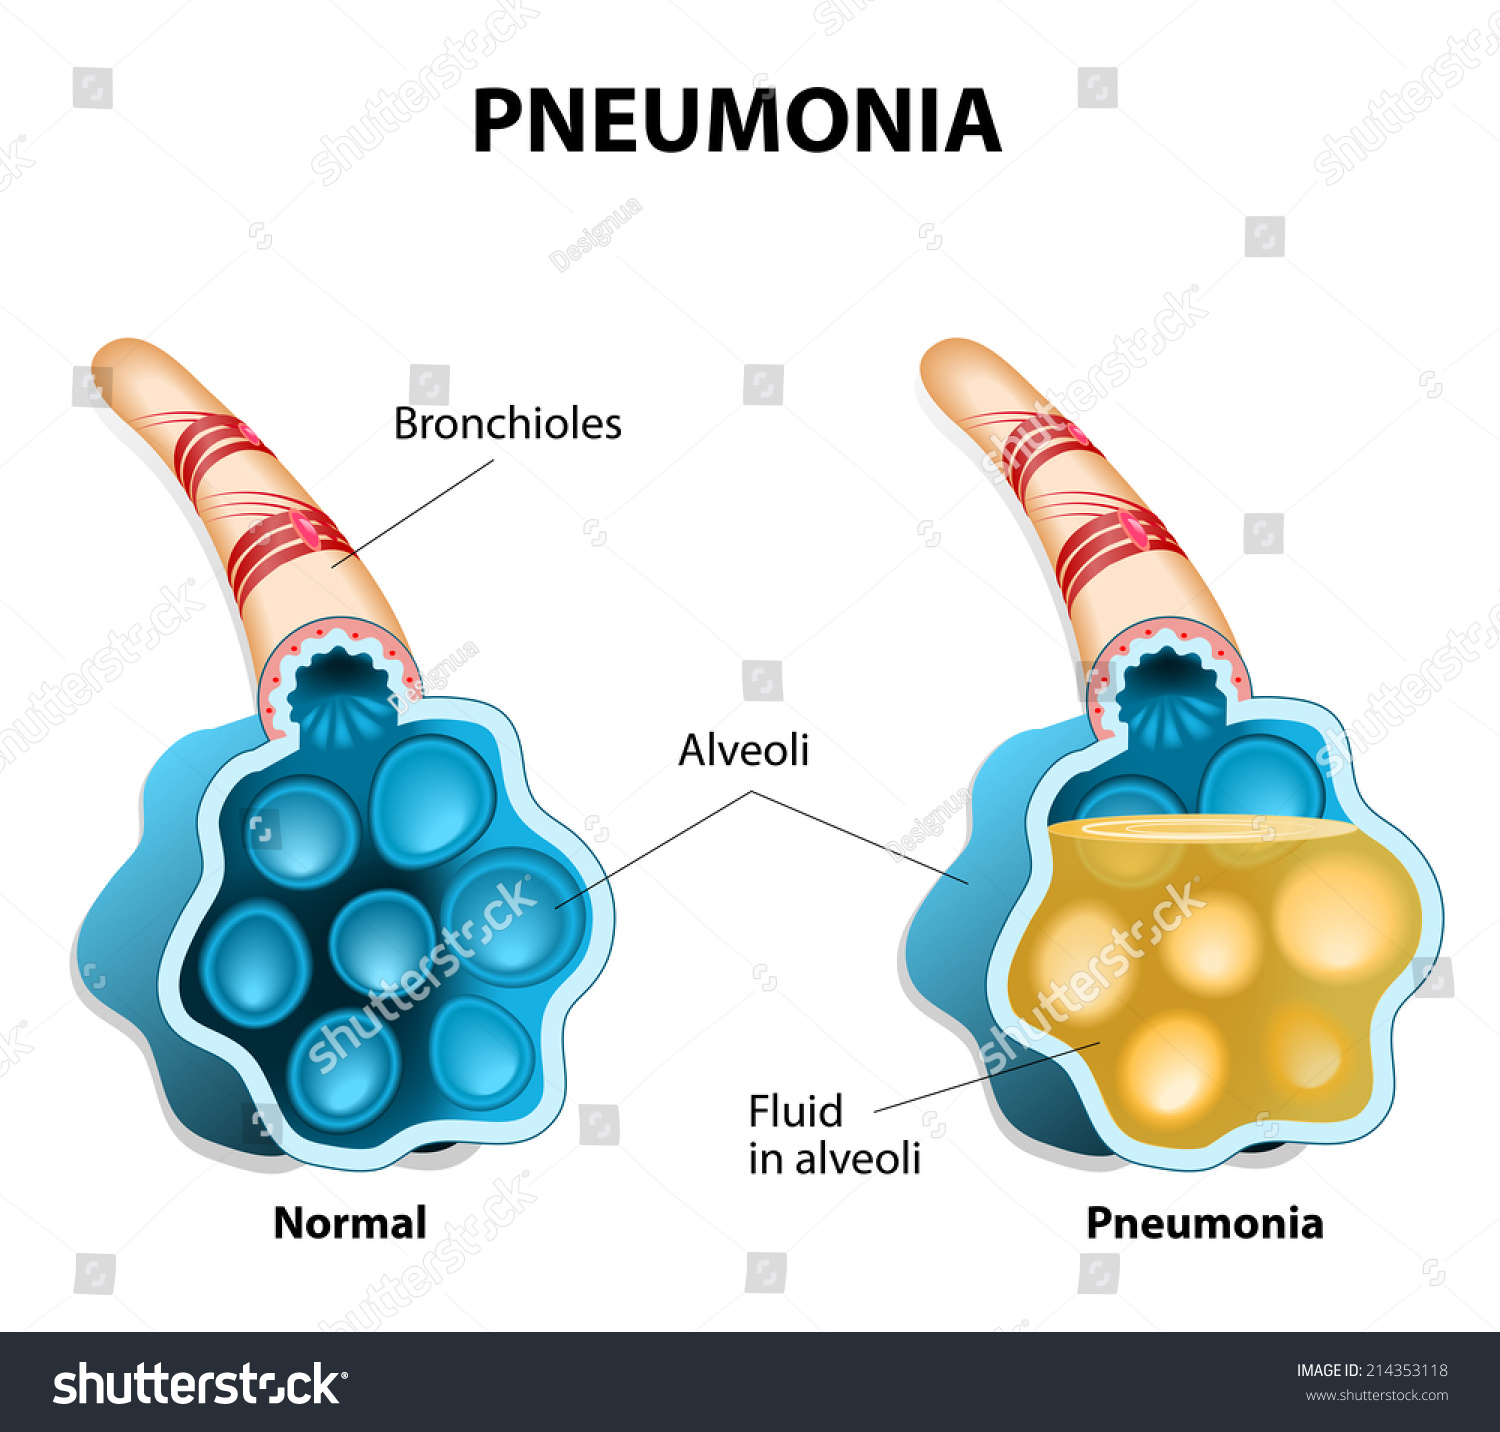 Pneumonia Illustration Shows Normal And Infected Alveoli. Pci Scanning Requirements 24 Hour Fax Service. Visa Credit Card Information. Business Management Services. Dallas Cosmetology Schools Suicide Self Harm. Nyc Moving And Storage Colleges In Sw Florida. Master Of Business Administration. Charter Communications Wausau. Abbott Healthcare Products Rn Nurse Programs